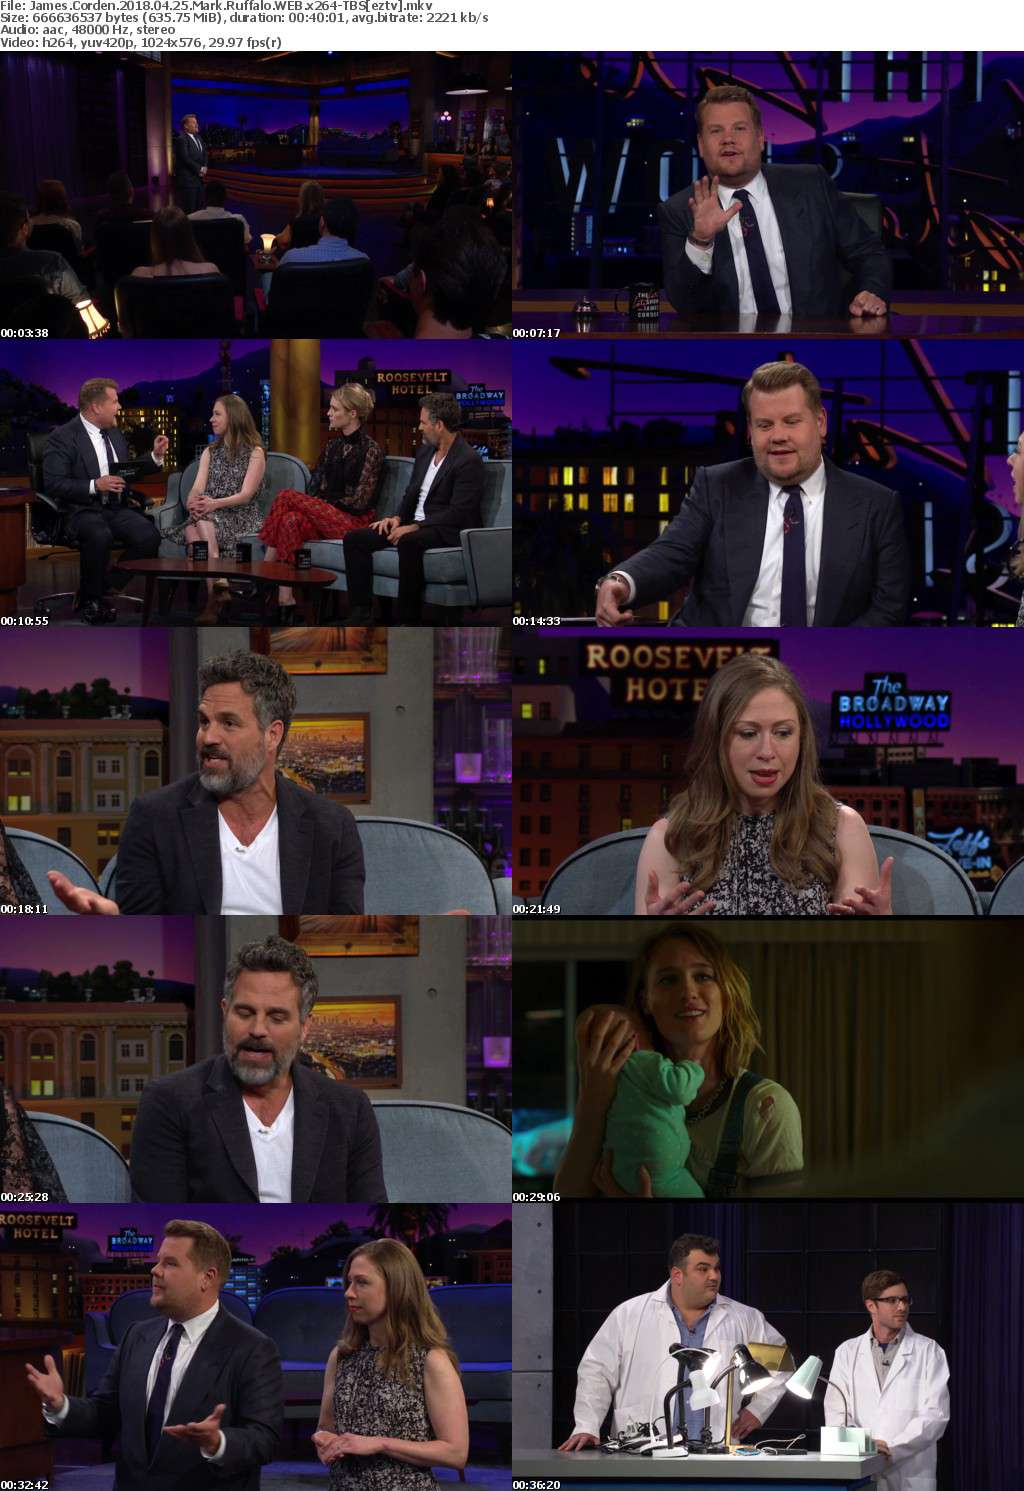 James Corden (2018) 04 25 Mark Ruffalo WEB x264-TBS